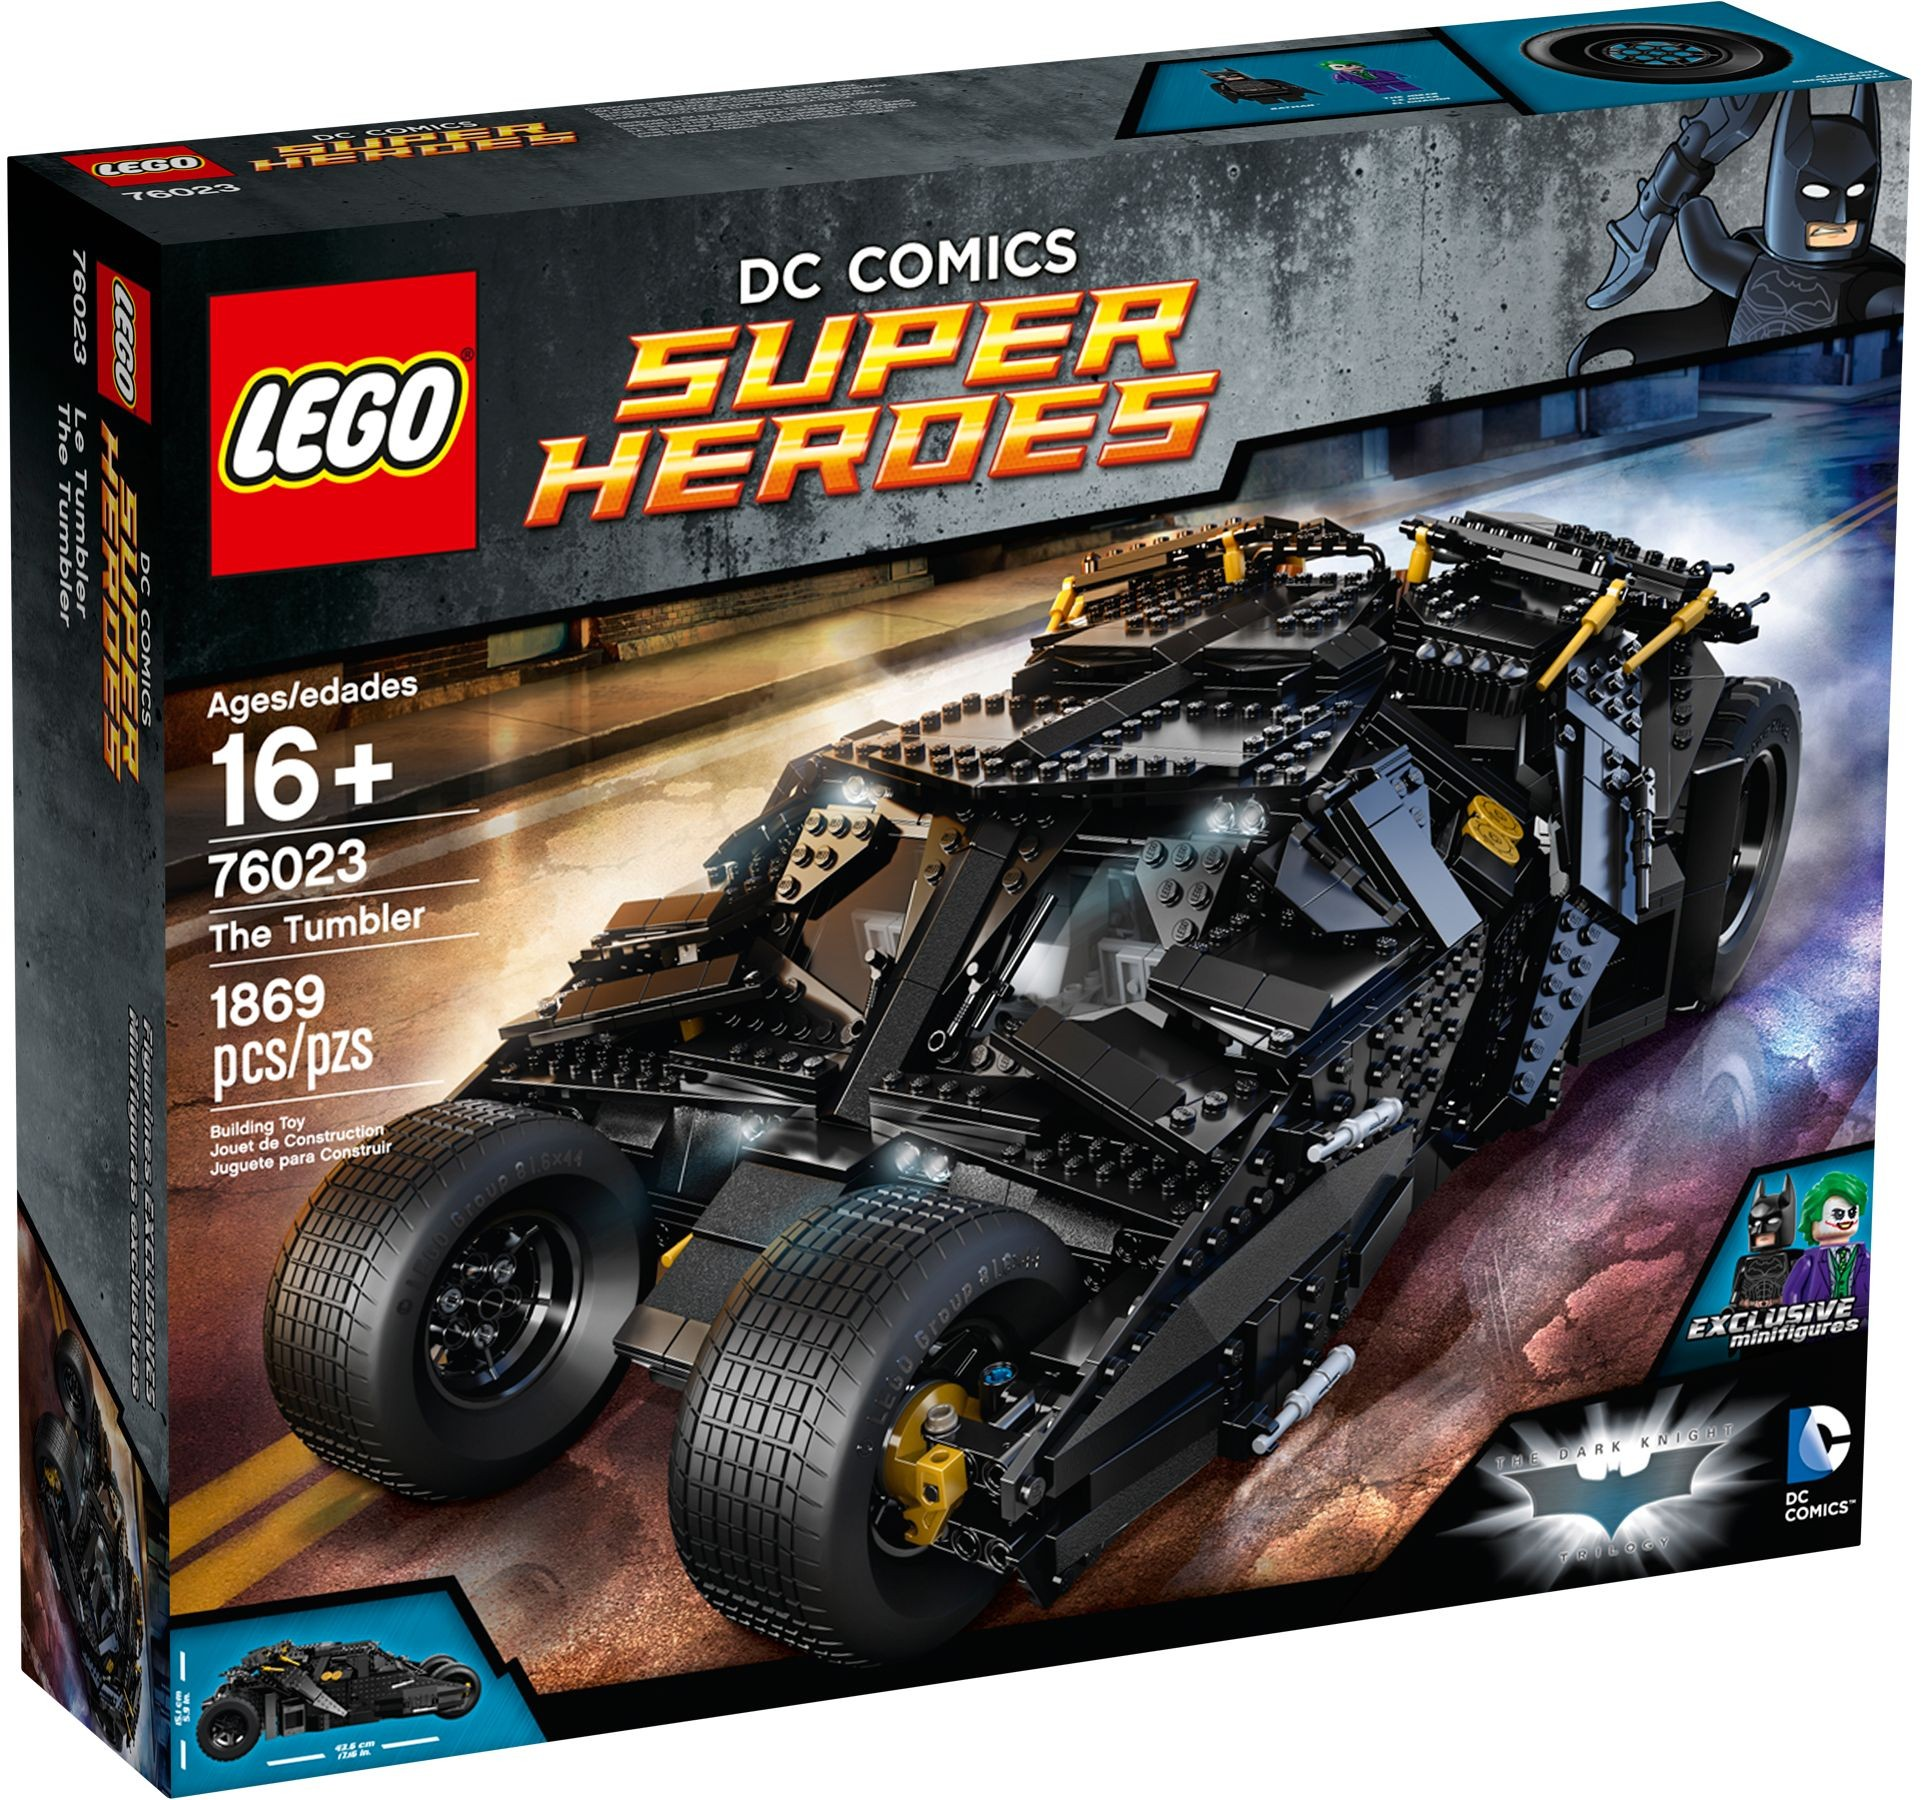 LEGO 76023 - Super Heroes - The Tumbler